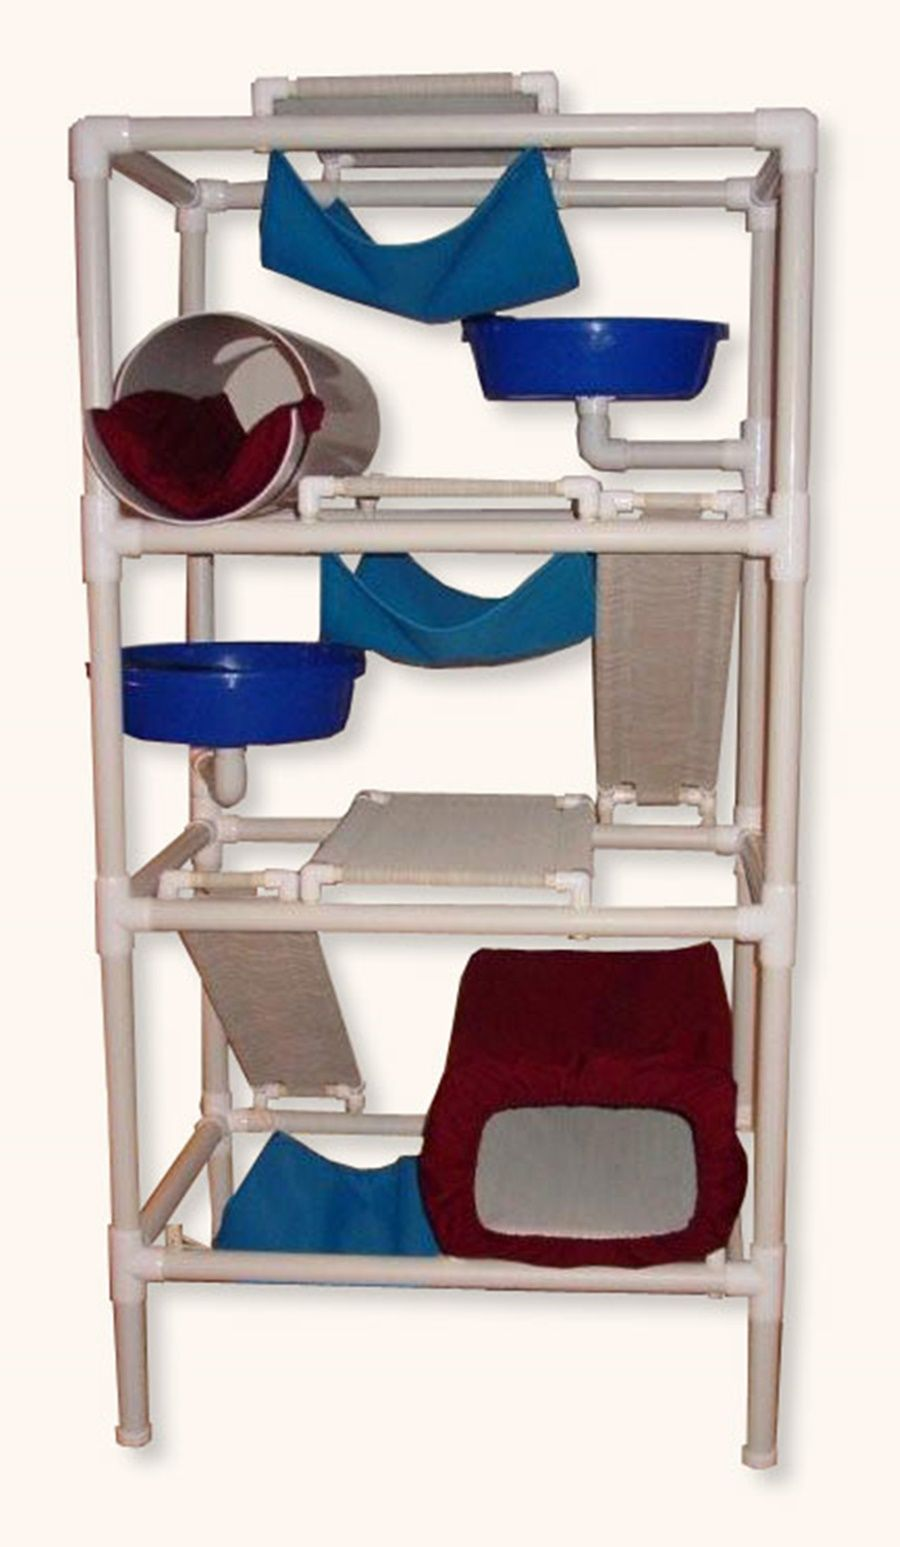 Awesome pvc cat tree pipe cat furniture pinterest for Pvc cat bed